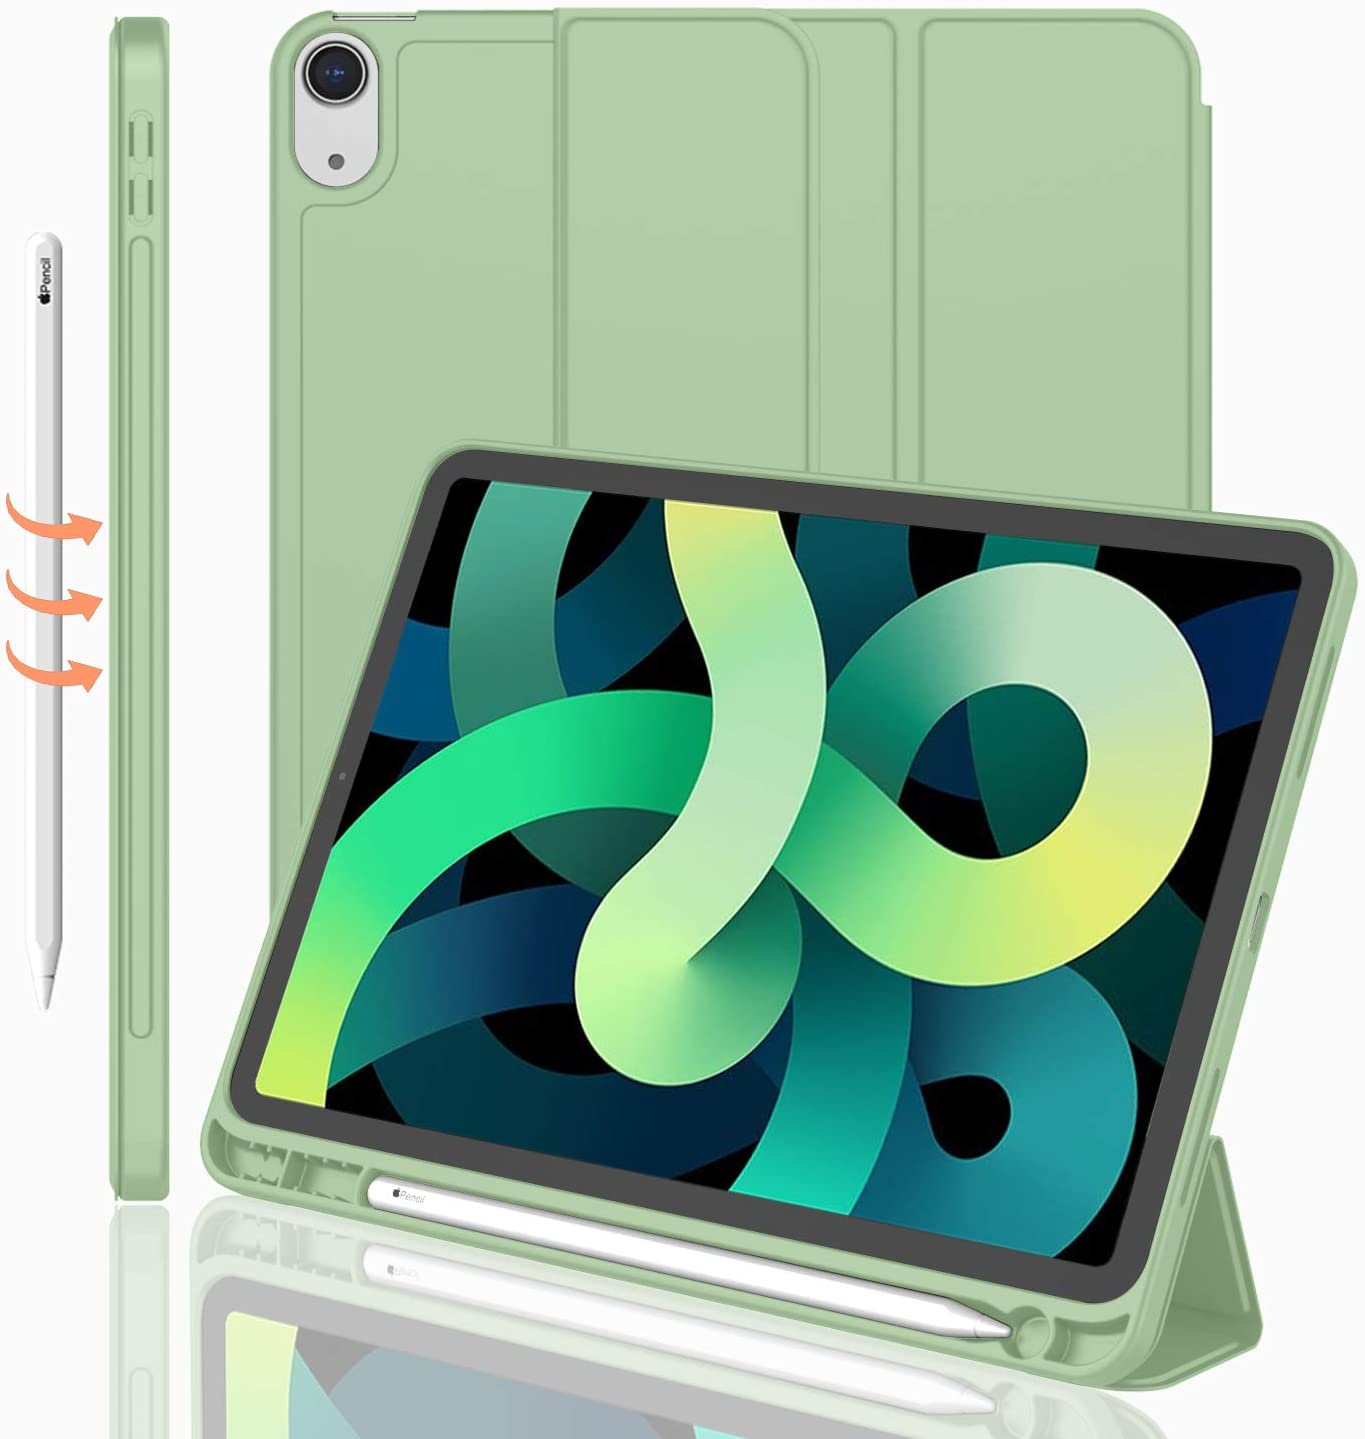 iMieet iPad Air 4th Generation Case 2020, iPad 10.9 Inch Case 2020 with Pencil Holder [Support Touch ID and iPad 2nd Pencil Charging/Pair], Trifold Stand Smart Case with Soft TPU Back (Matcha Green)